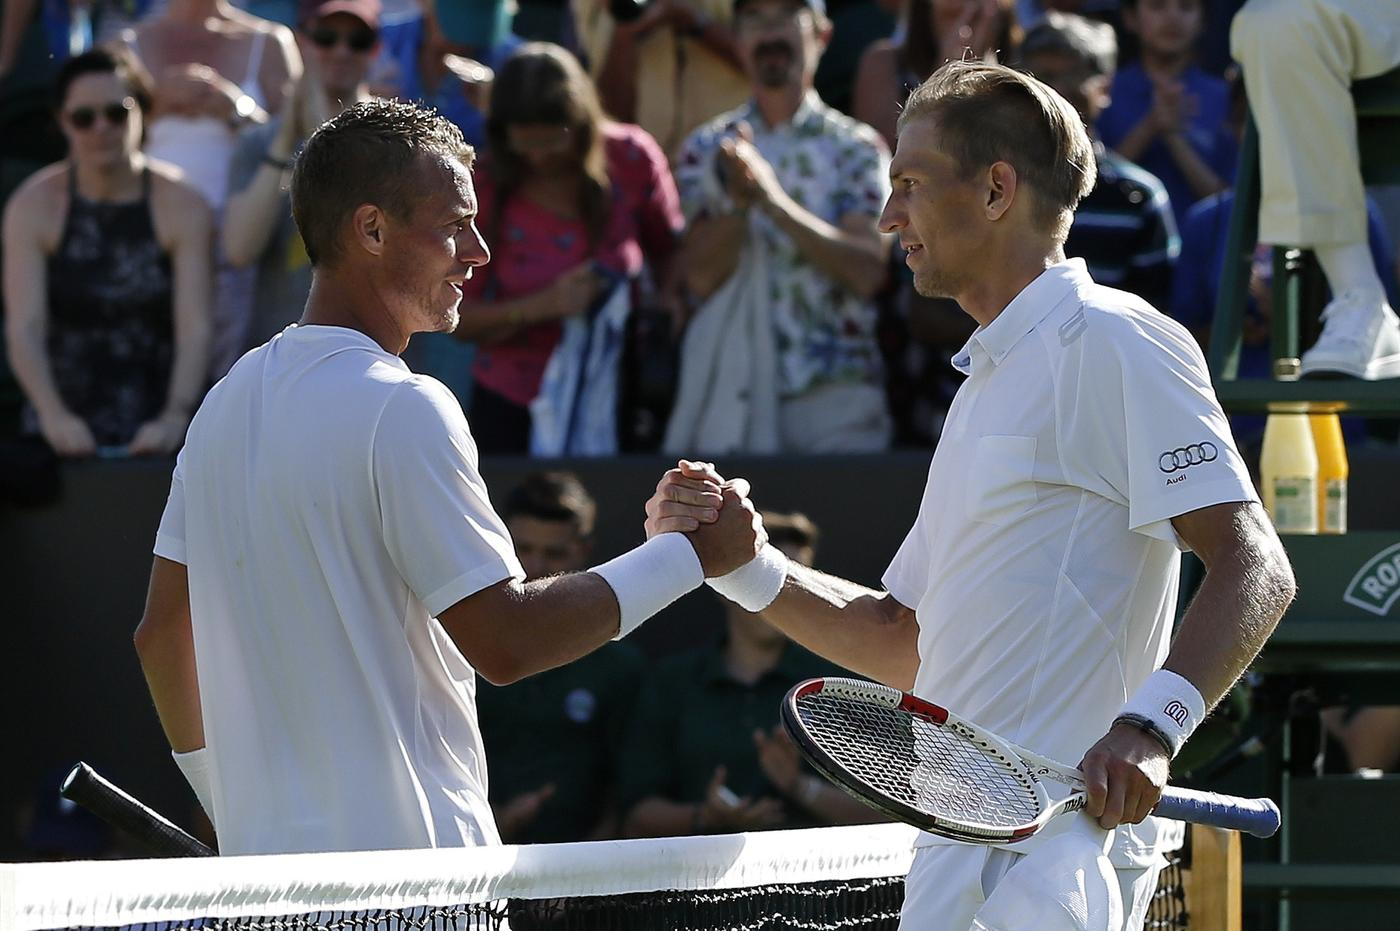 Wimbledon 2015: Lleyton Hewitt gets rousing send-off after making last SW19 appearance